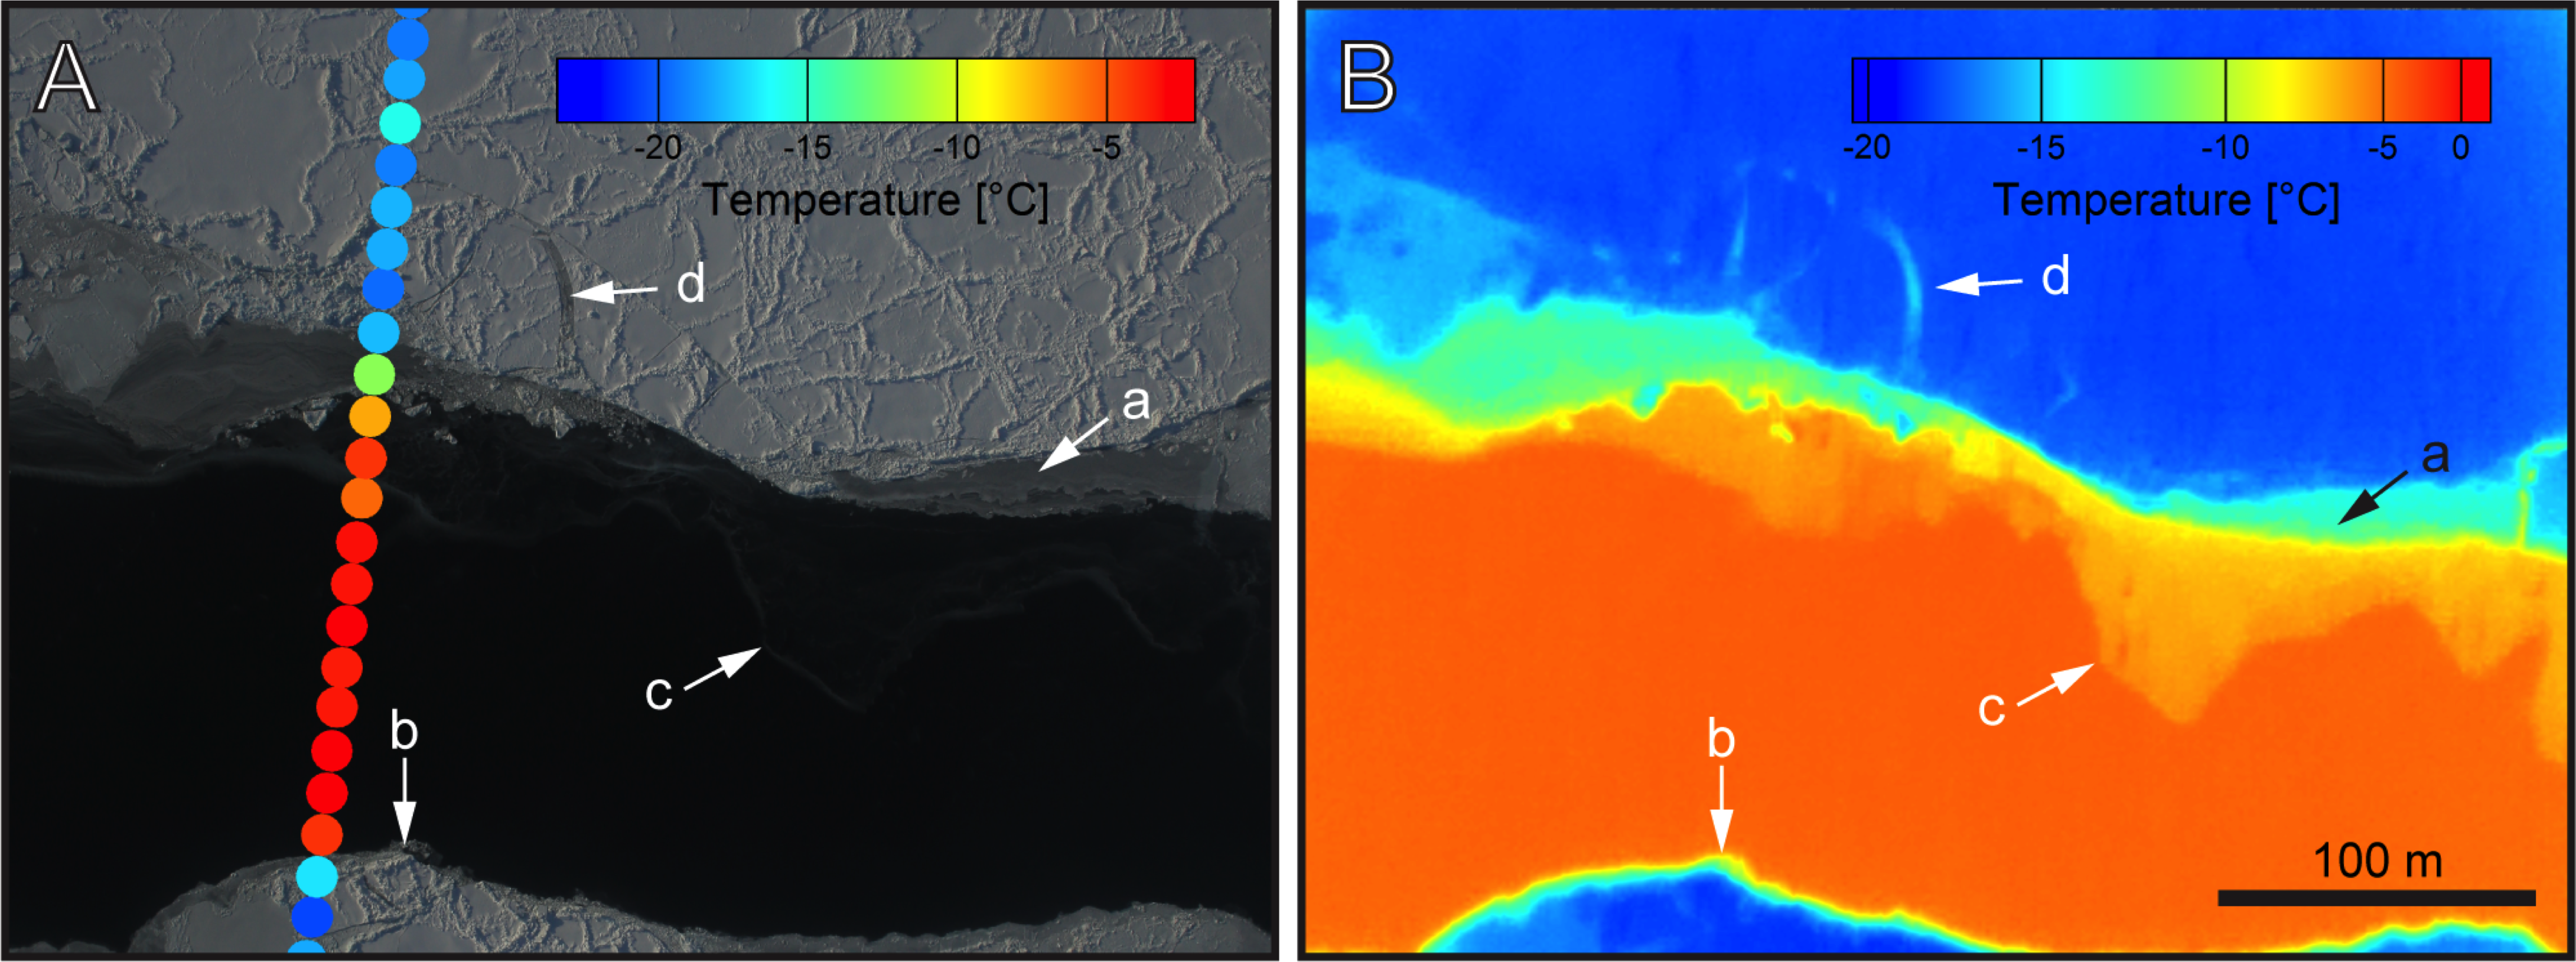 FLIR cameras help scientists map thinner ice that can't be seen my many sensors. Image A is from the Digital Mapping System (DMS) camera, while image B is a FLIR image of the same area. a) Shows thermal imaging reveals thickness changes with different temperatures. b) shows temperature gradients across edge of lead. c) The thermal image reveals very thin ice that is difficult to identify in the DMS image and can lead to a bias in ice thickness estimates. d) Small scale features can be resolved with this camera.  Credit: NASA IceBridge